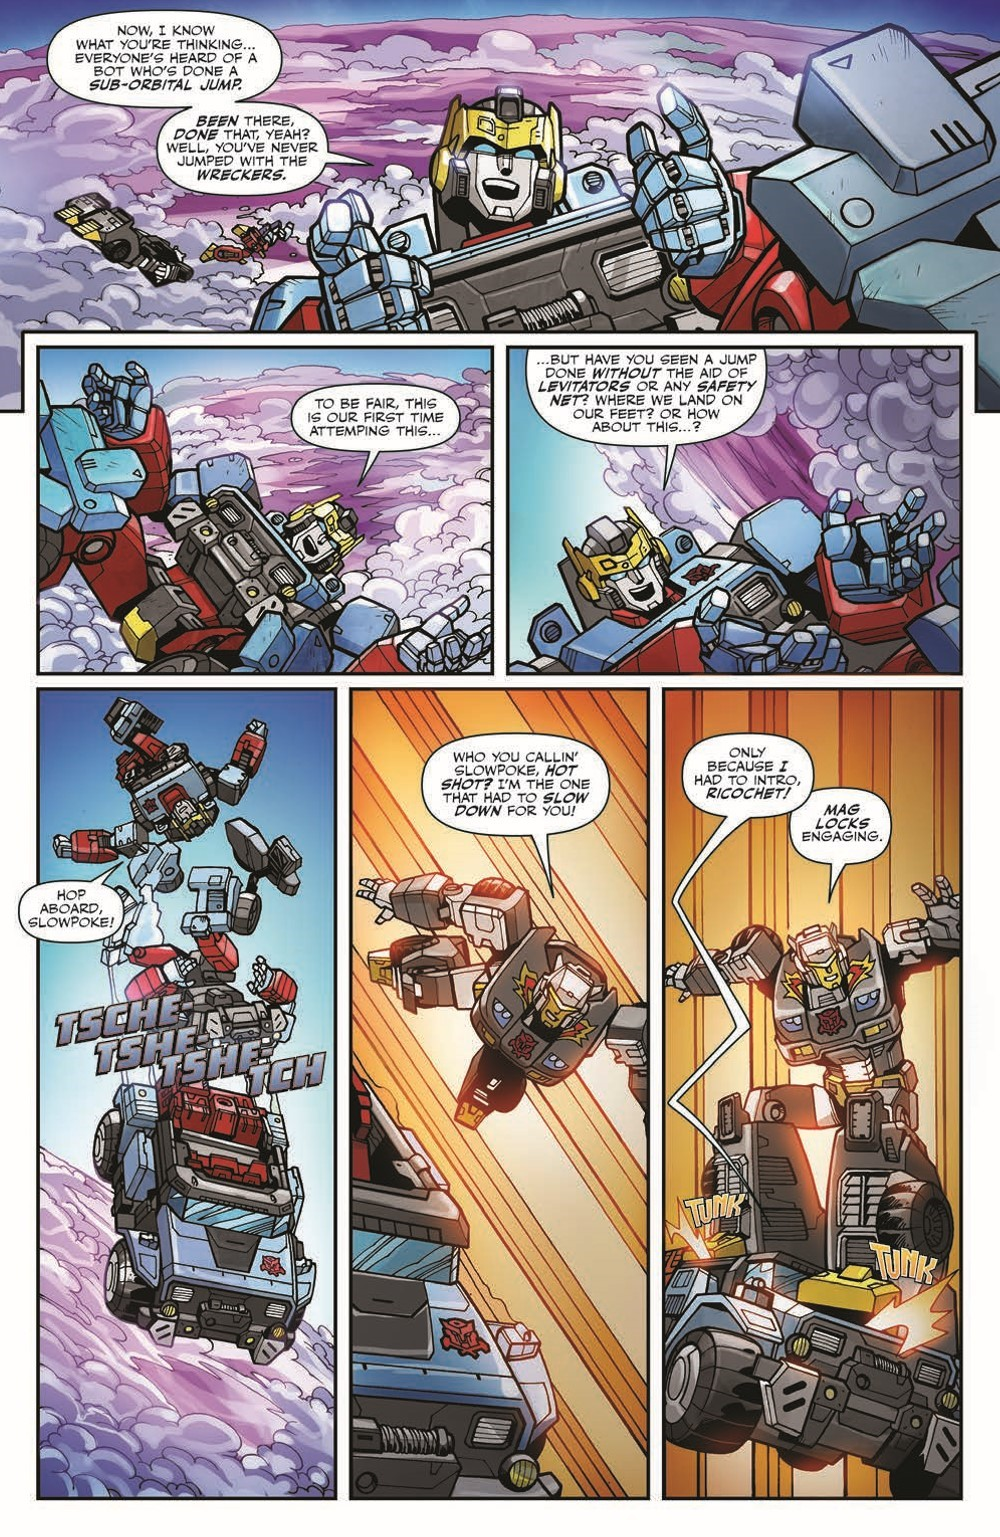 TFWreckers01-pr-5 ComicList Previews: TRANSFORMERS WRECKERS TREAD AND CIRCUITS #1 (OF 4)